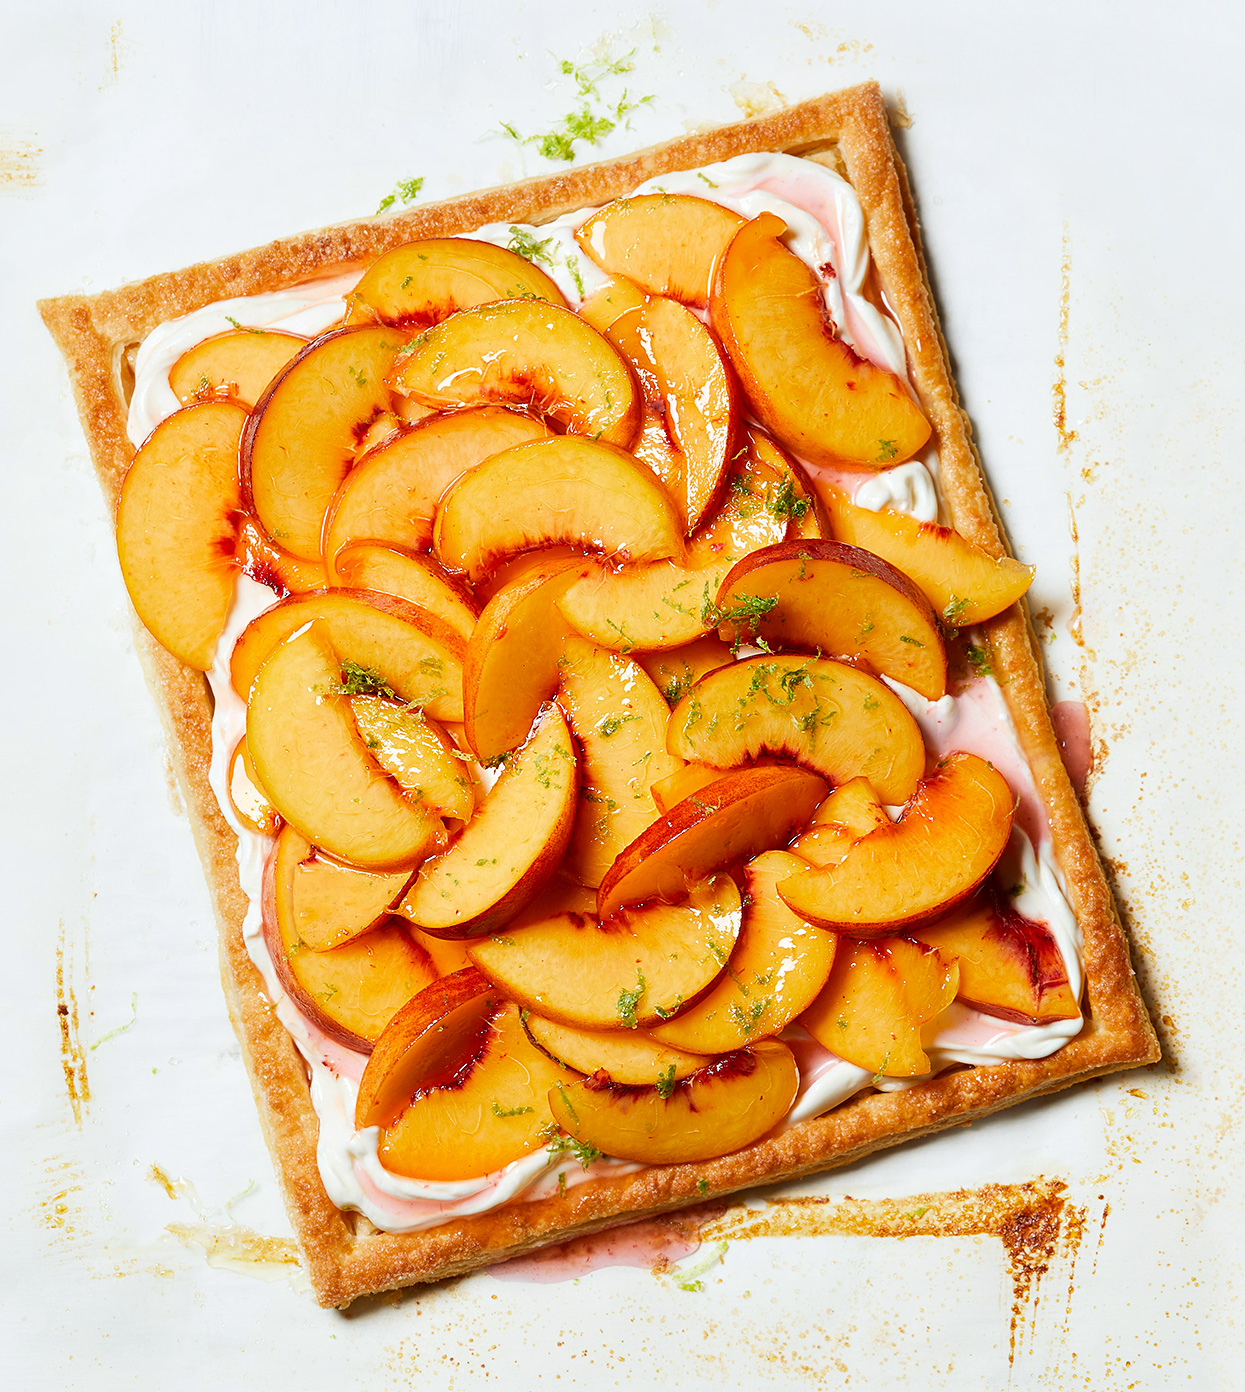 Zesty Peaches and Cream Tart